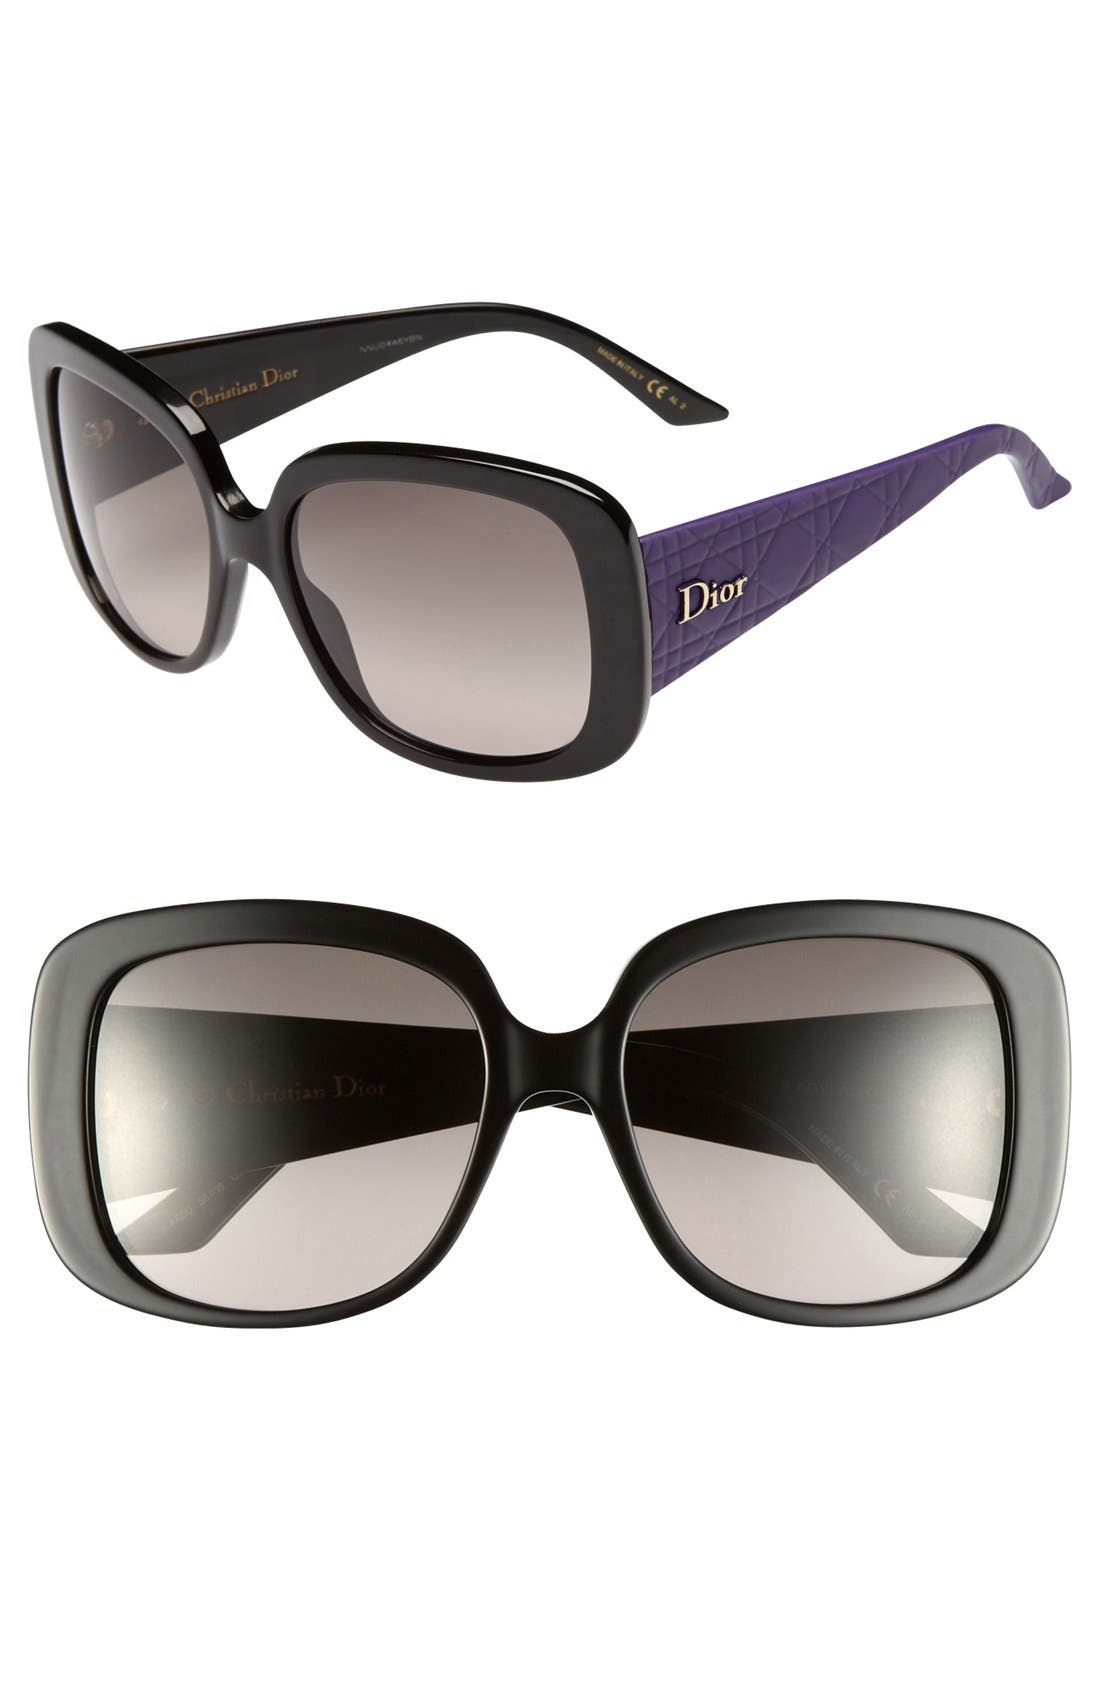 Main Image - Dior 'Ladylady' 56mm Sunglasses